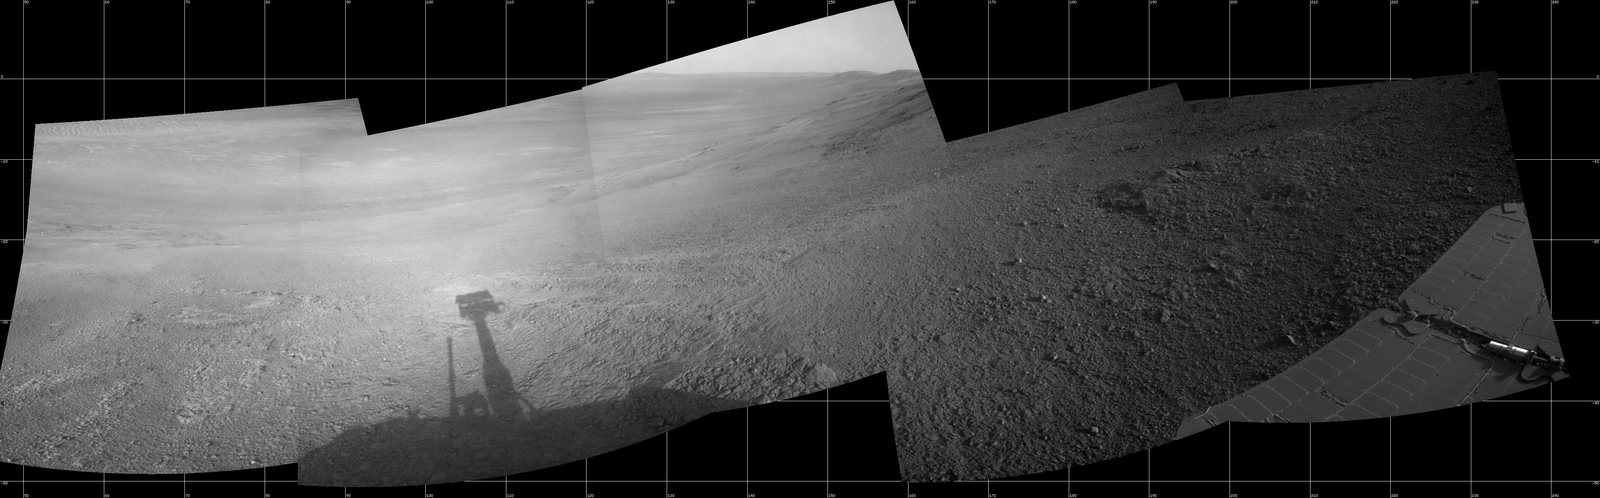 "This July 7, 2017, scene from the Navcam on NASA's Opportunity Mars rover shows a view from the upper end of ""Perseverance Valley"" on the inner slope of Endeavour Crater's rim.  At left, the valley descends about 200 yards to the crater floor. In the middle, the crater rim extends southeastward."